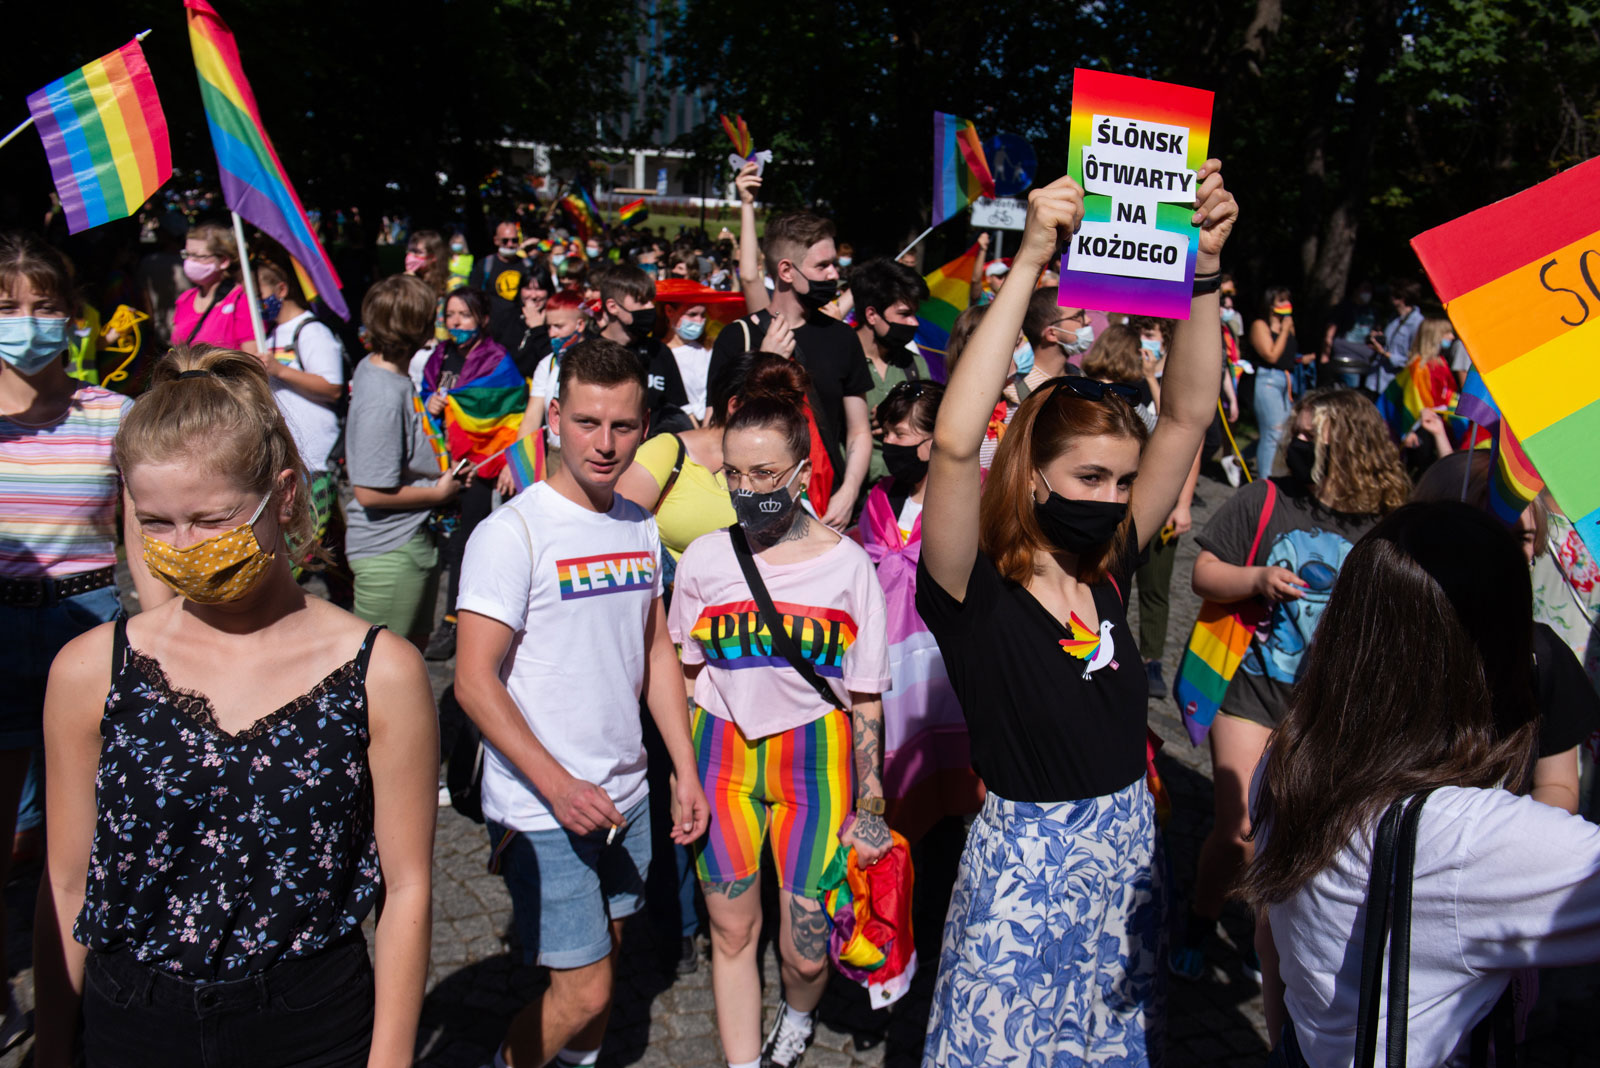 09 - In Poland's 'LGBT-free zones,' existing is an act of defiance -